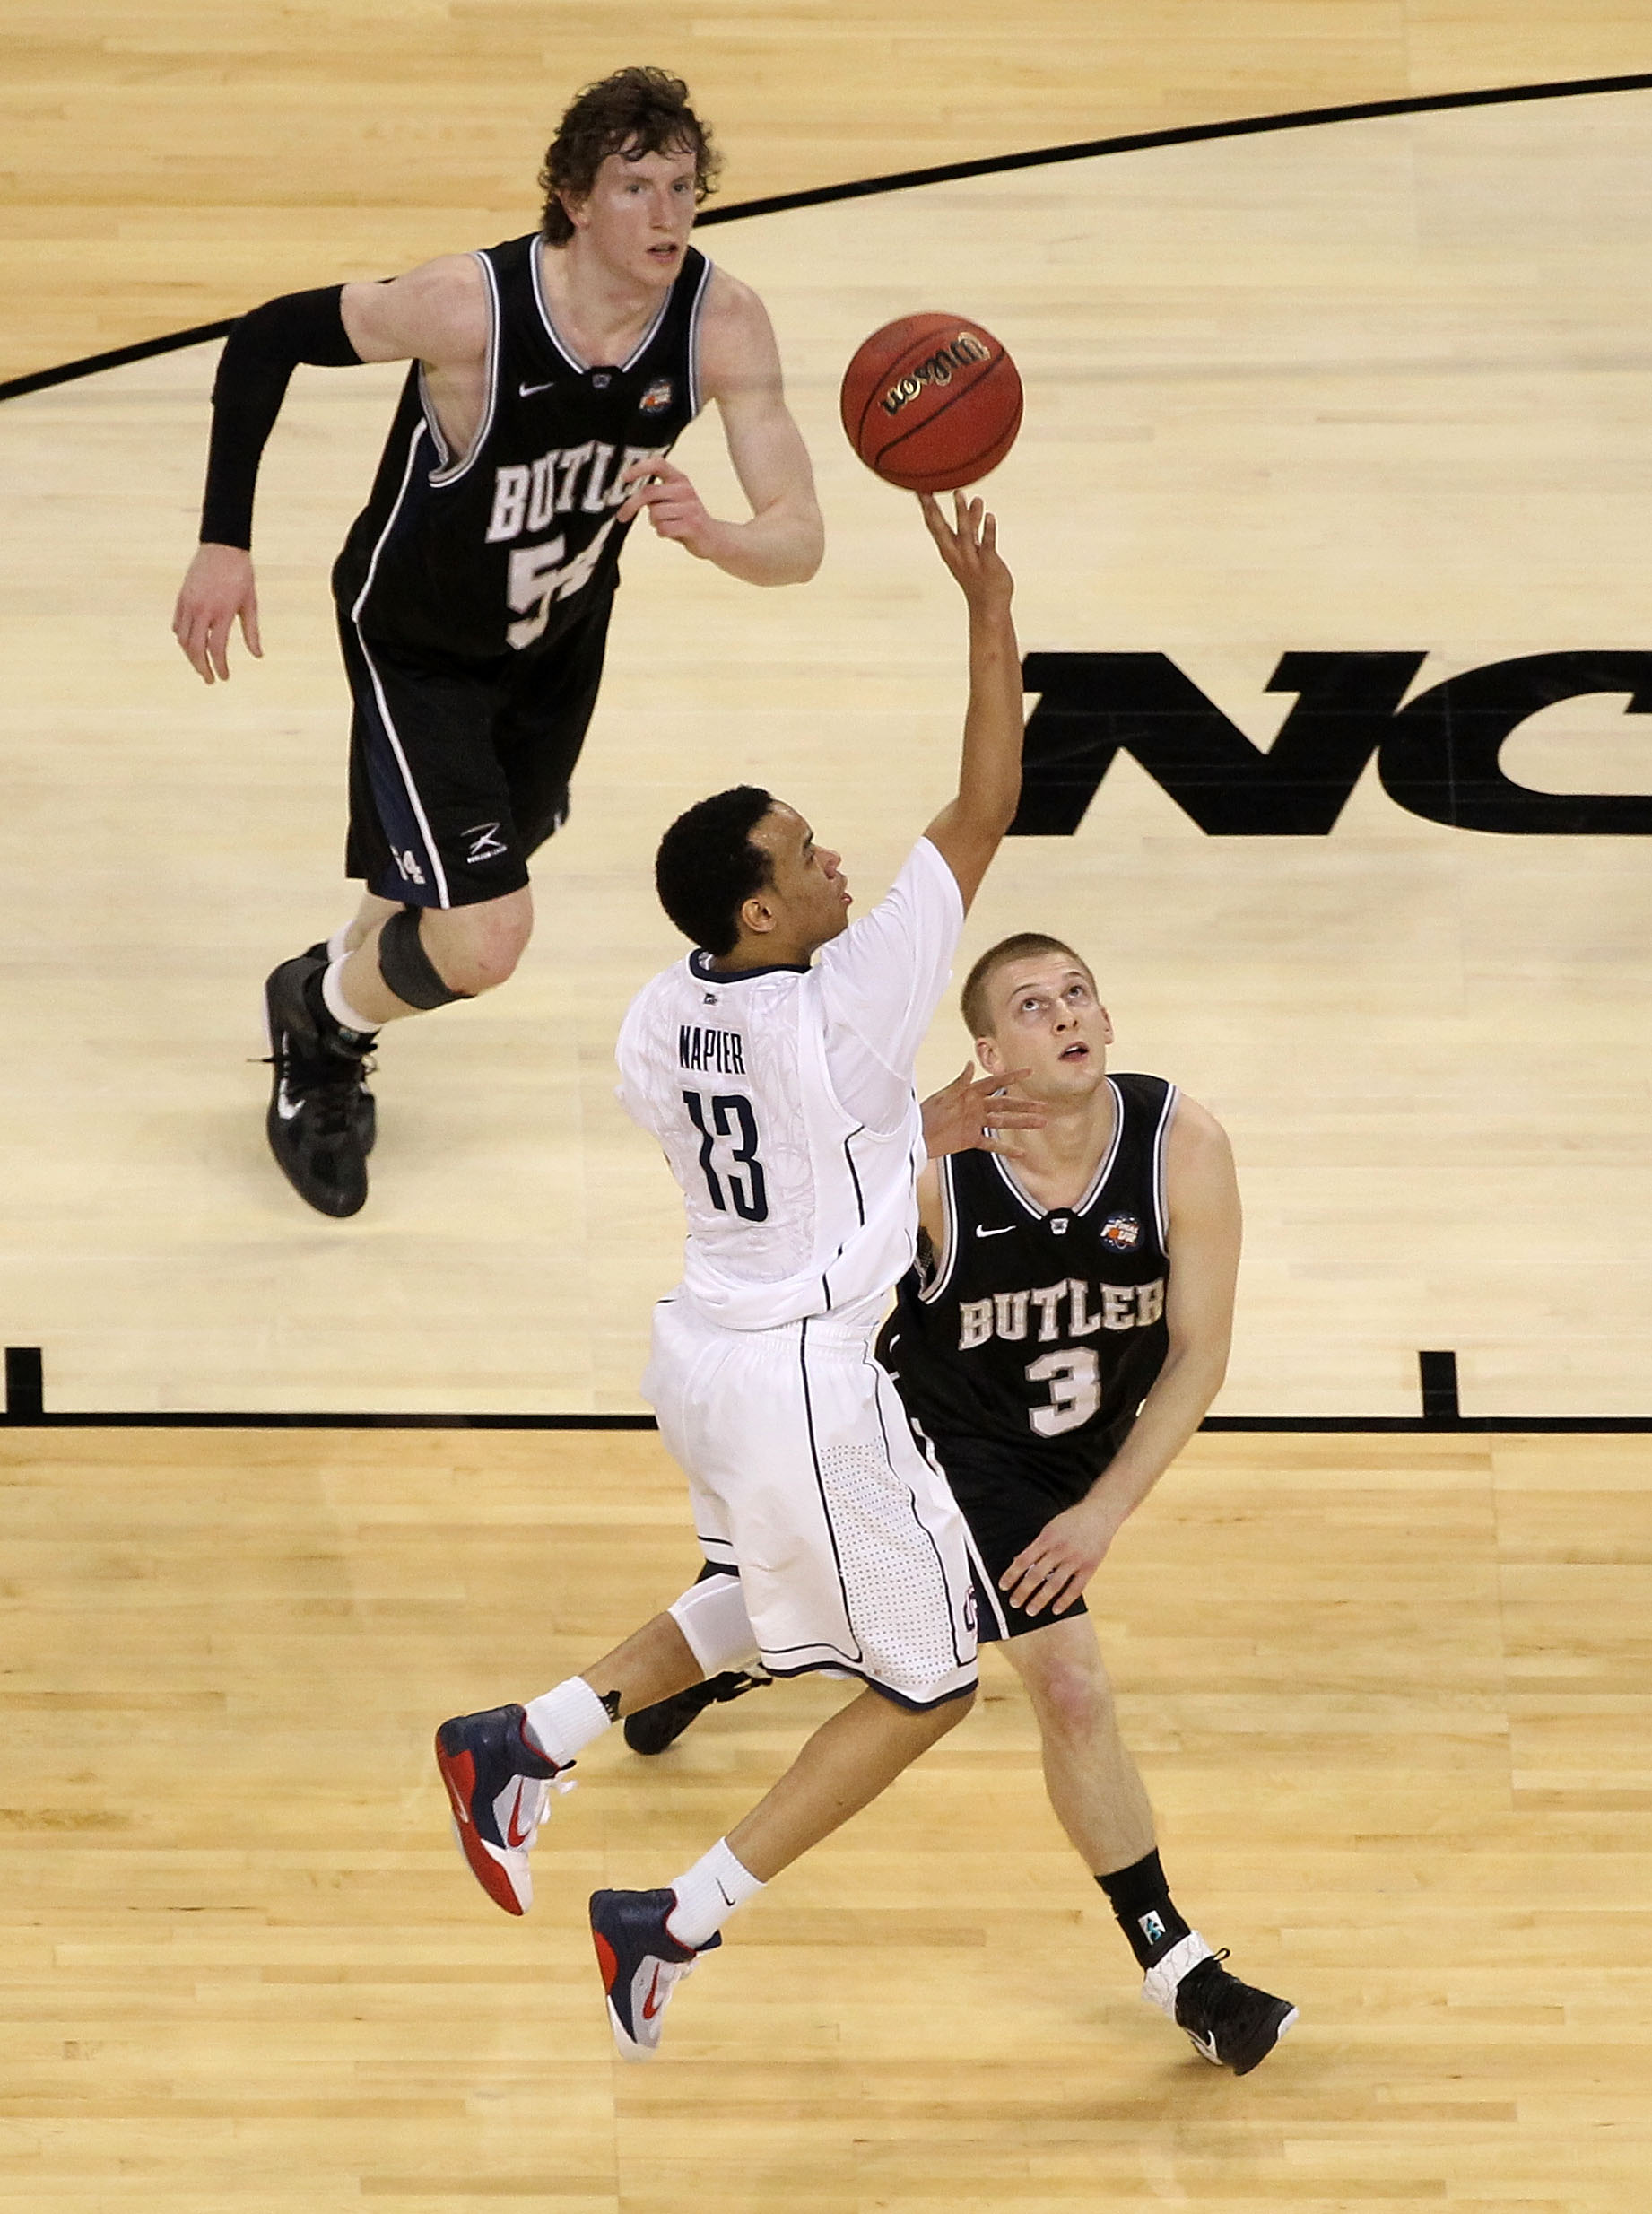 HOUSTON, TX - APRIL 04:  Shabazz Napier #13 of the Connecticut Huskies goes up for a shot over Zach Hahn #3 of the Butler Bulldogs during the National Championship Game of the 2011 NCAA Division I Men's Basketball Tournament at Reliant Stadium on April 4,